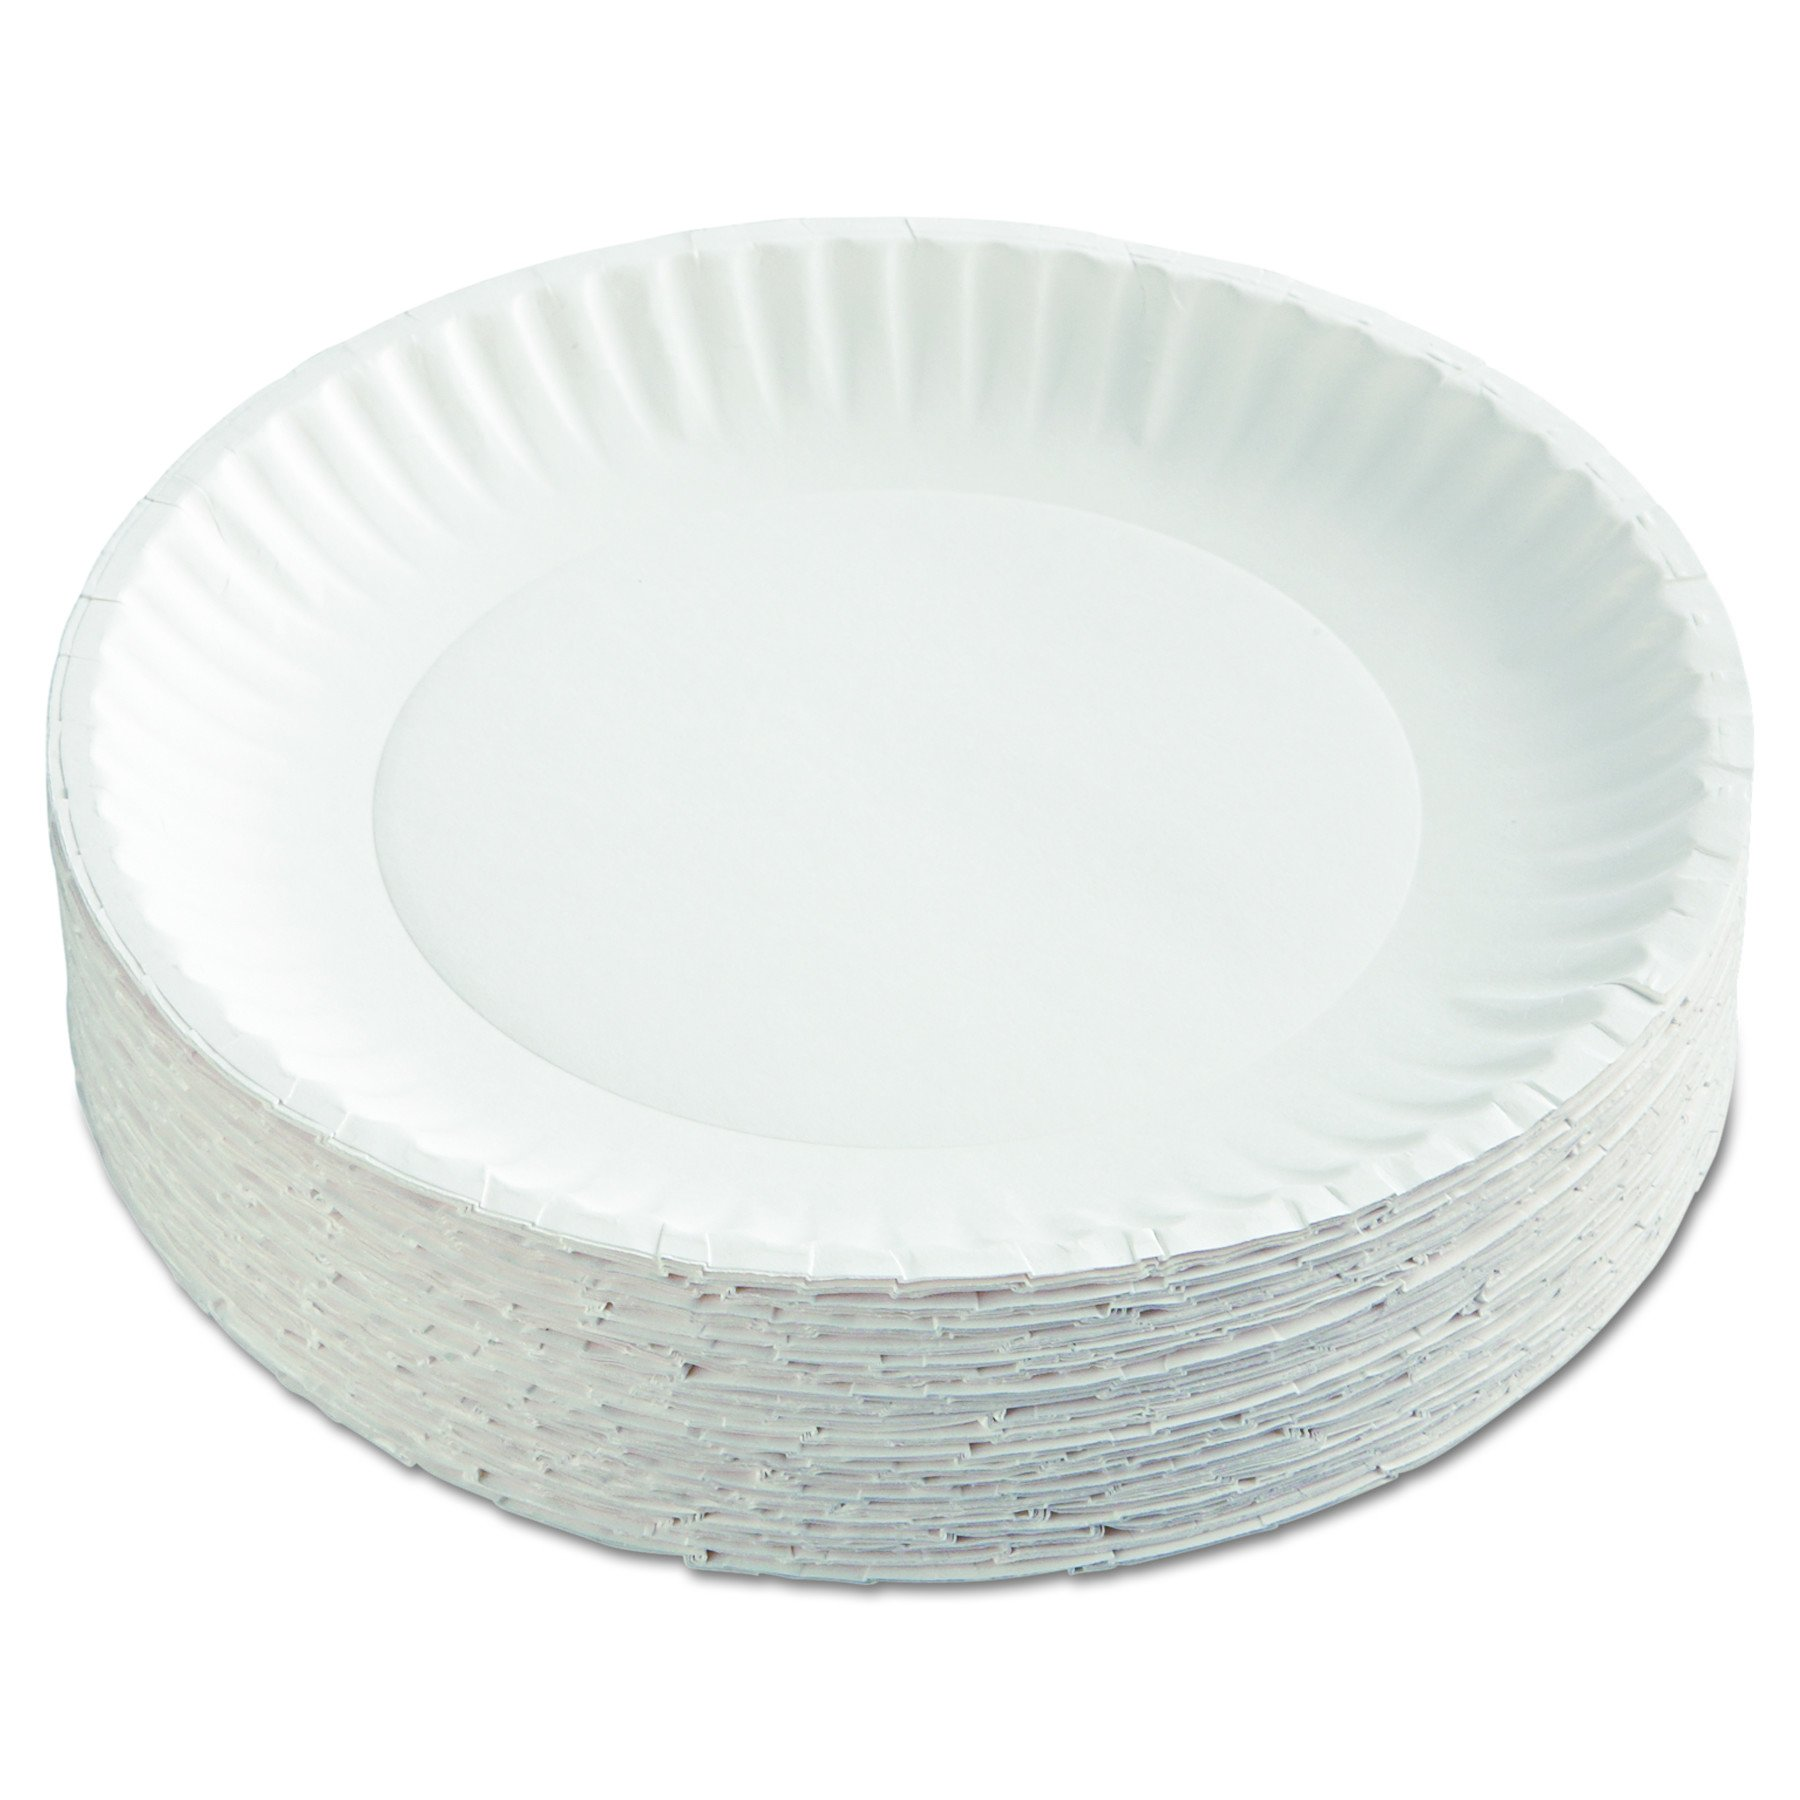 AJM Packaging Corporation PP9GRAWH Paper Plates, 9'' Diameter, White, 12 Packs of 100 (Case of 1200) by AJM Packaging